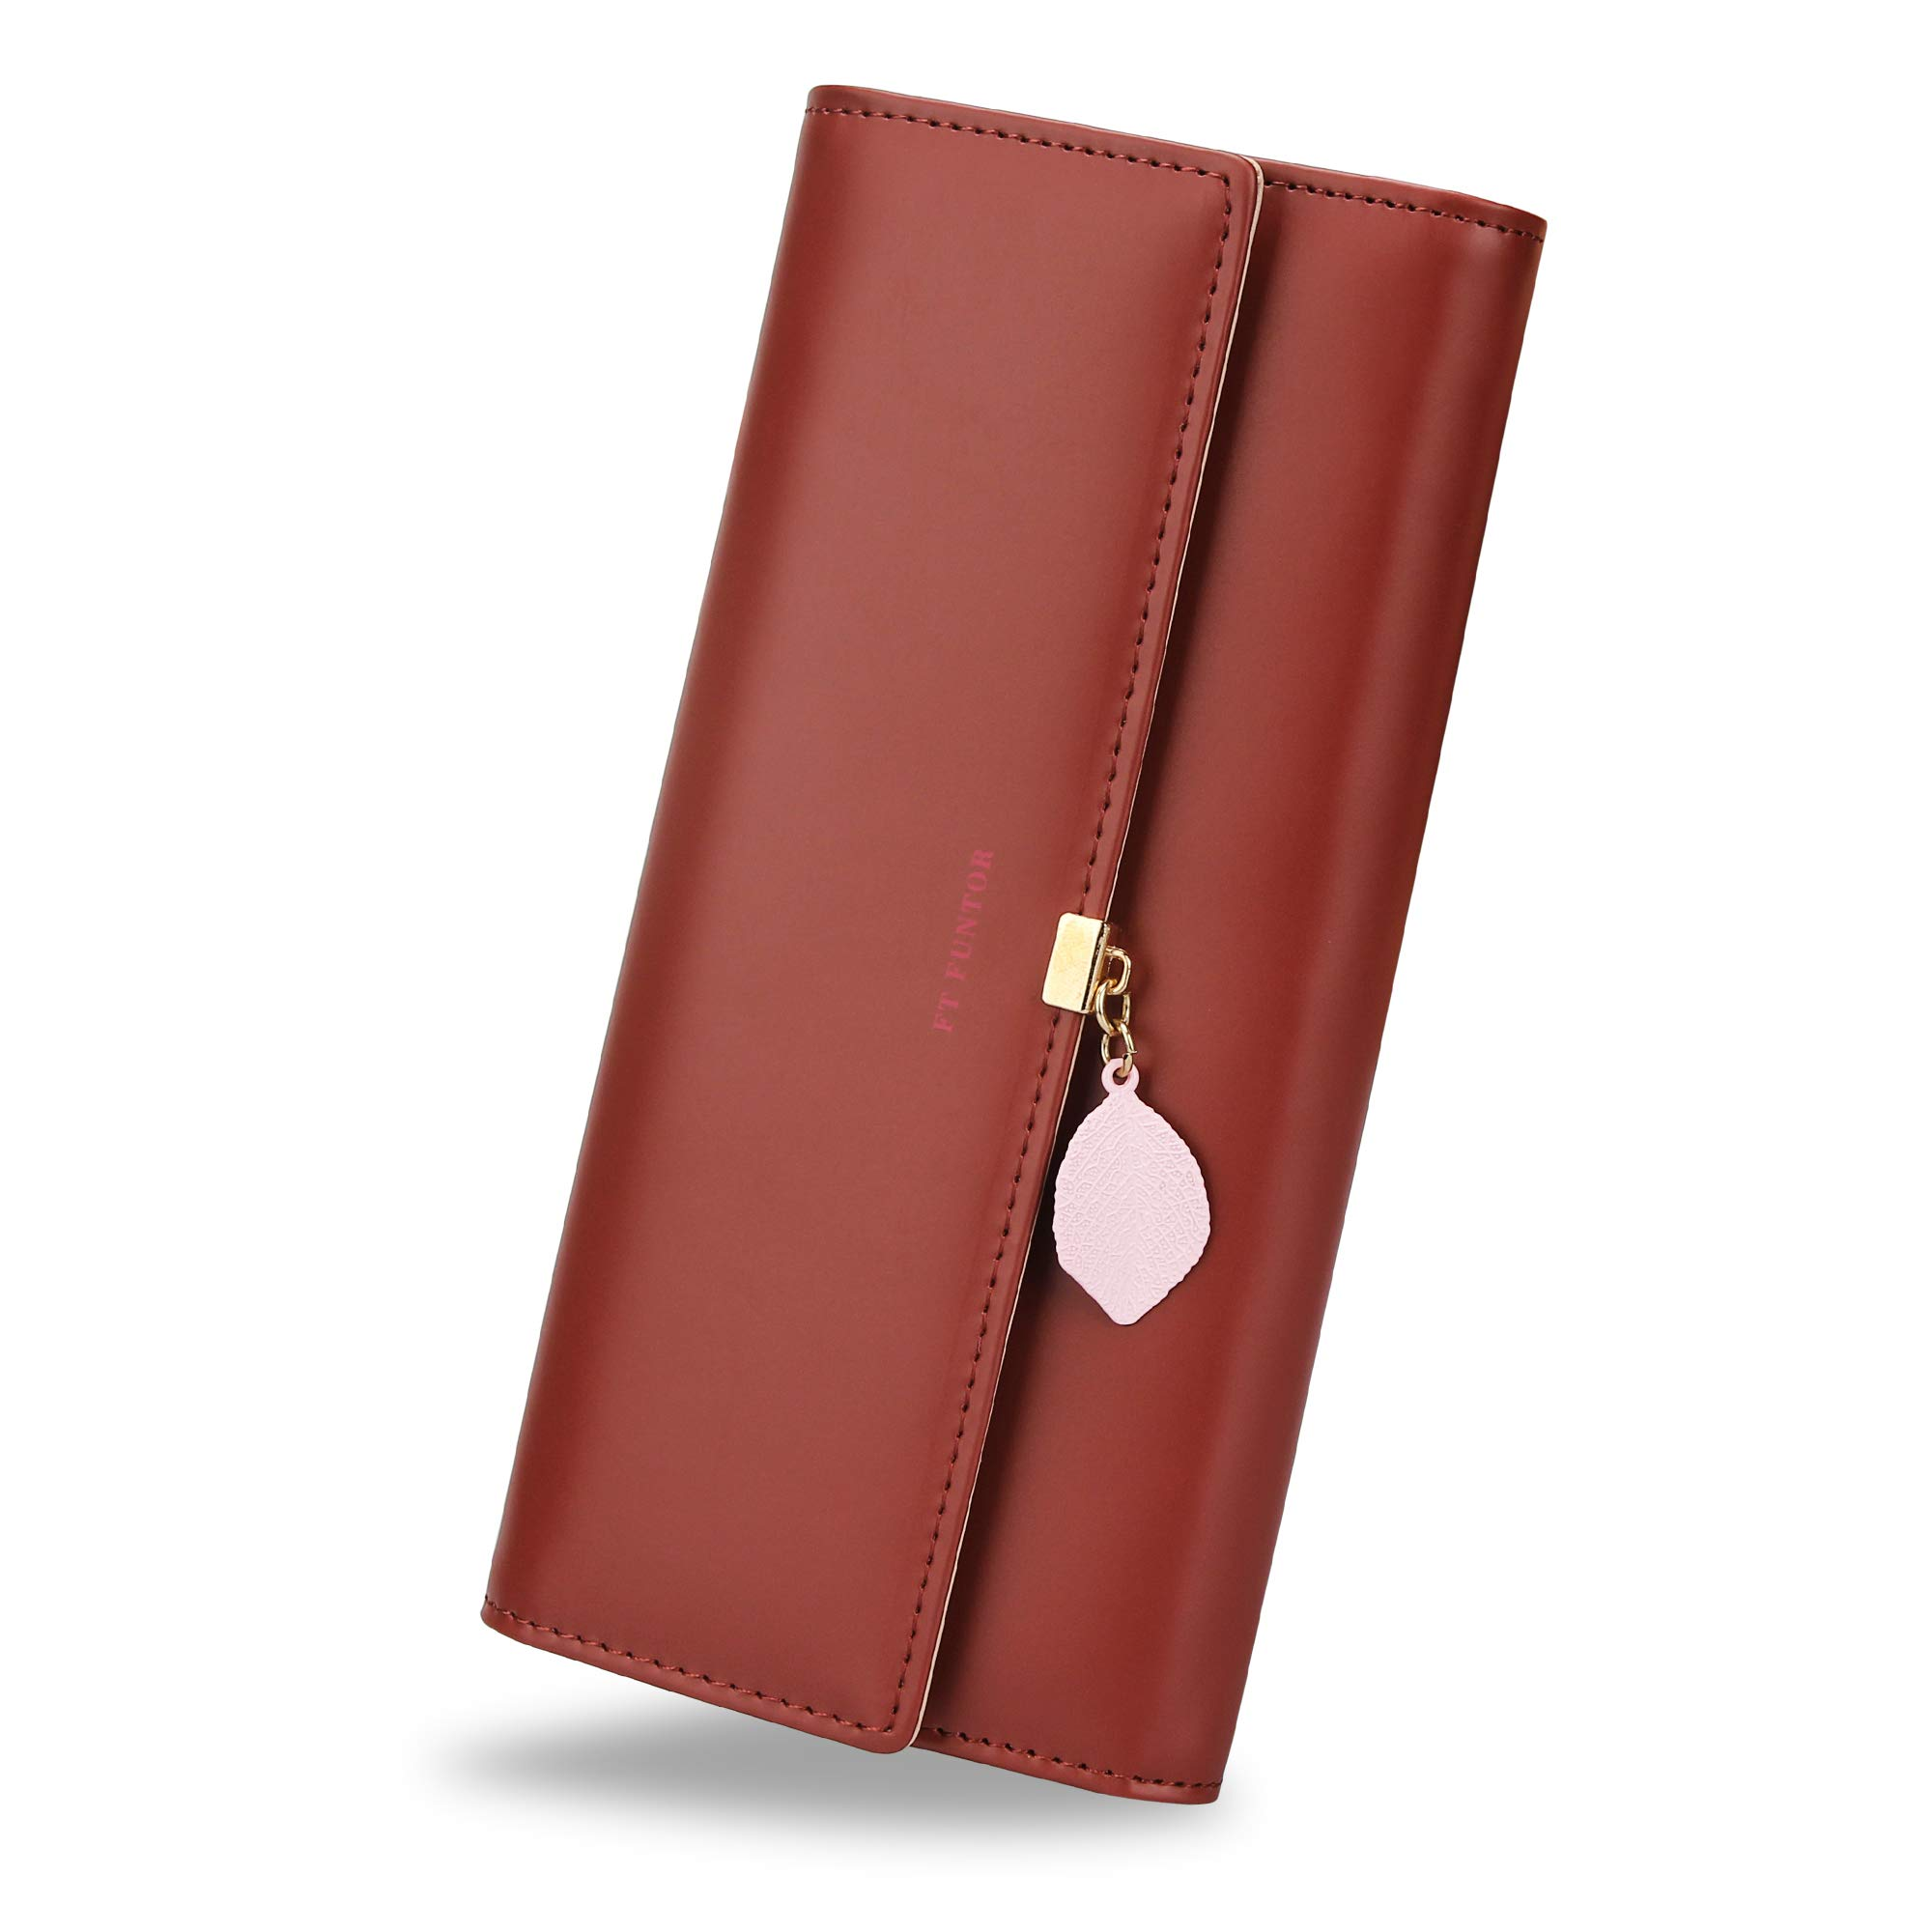 FT Funtor RFID Wallets for Women, Leaf Card Holder Trifold Ladies Wallets Coins Zipper Pocket with ID Window Large Wine Red